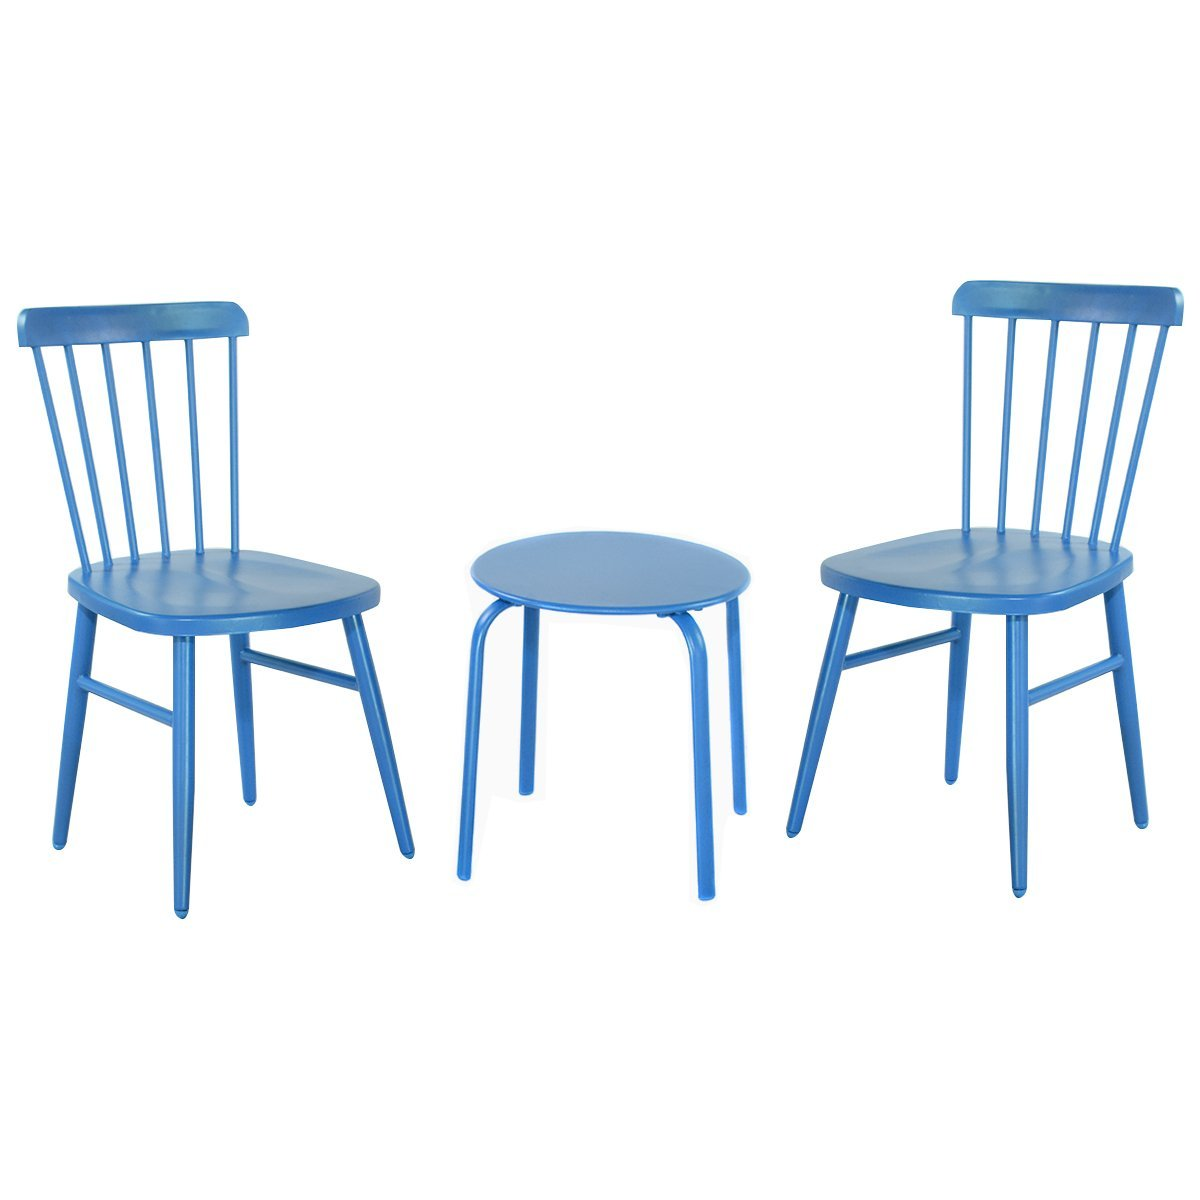 3 pcs Bistro Steel Table and Chair